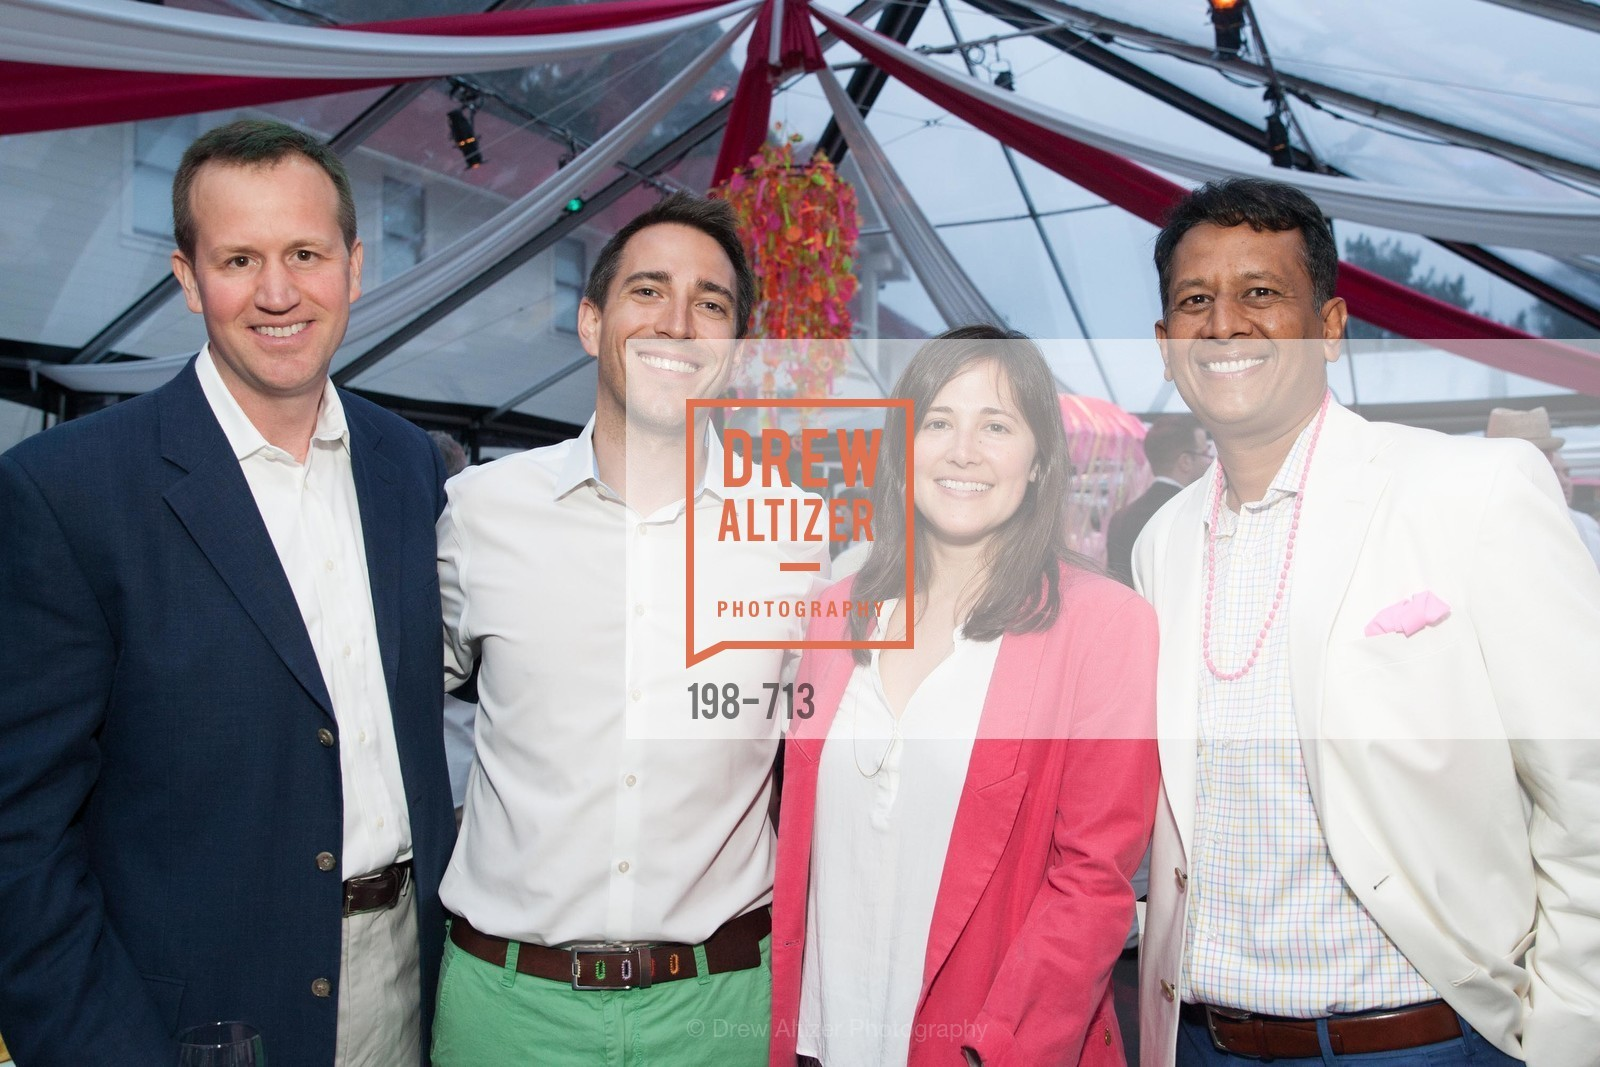 James Rothschild, Gregor Feige, Jackie Dille, Sanjay Jain, THE BAY AREA DISCOVERY MUSEUM'S Playdate 2015:  White to Bright, US, May 8th, 2015,Drew Altizer, Drew Altizer Photography, full-service agency, private events, San Francisco photographer, photographer california